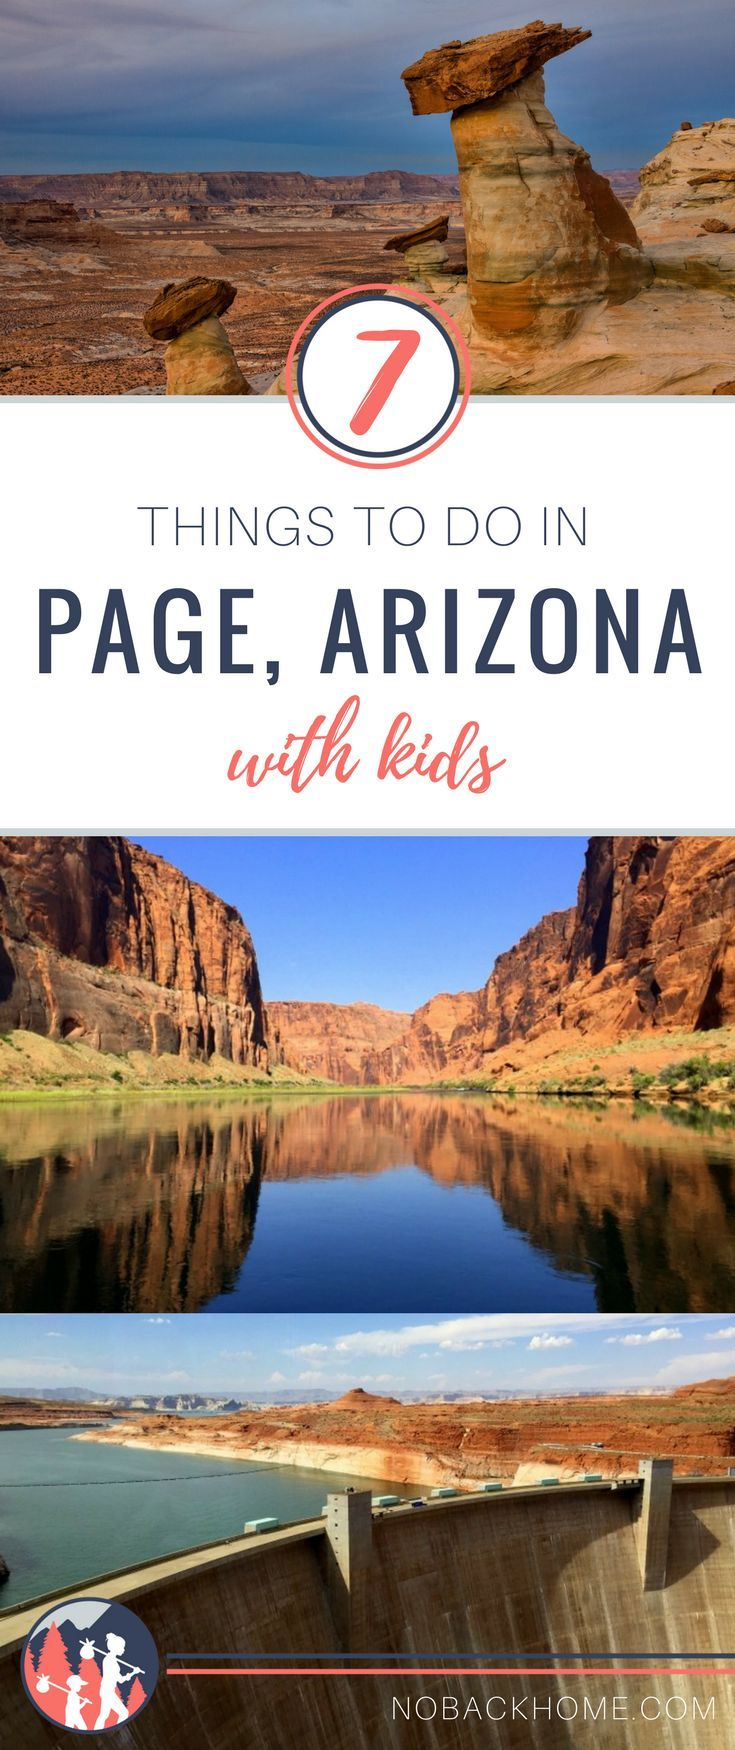 If you are visiting the Grand Canyon, don't miss one of the state's highlights at Page Arizona. From Horseshoe Bend to Antelope Canyon it's an outdoor lovers dream. #page #arizona #horseshoebend #outdoorfamily